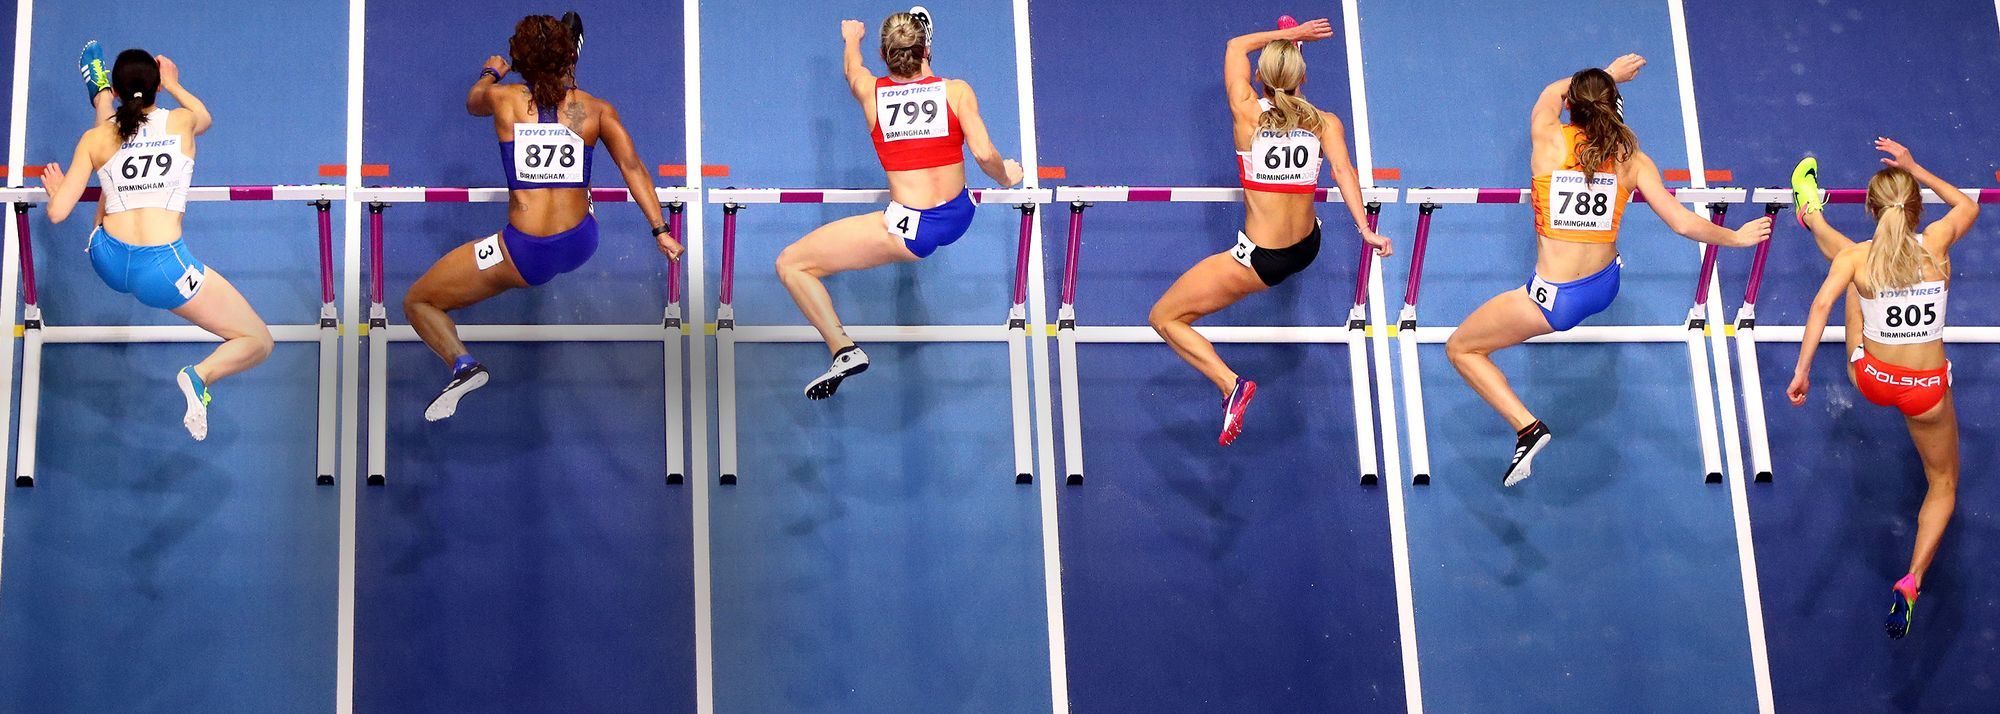 With just under one year to go to the start of the World Athletics Indoor Championships Belgrade22, the timetable and qualification system for the competition have been released.